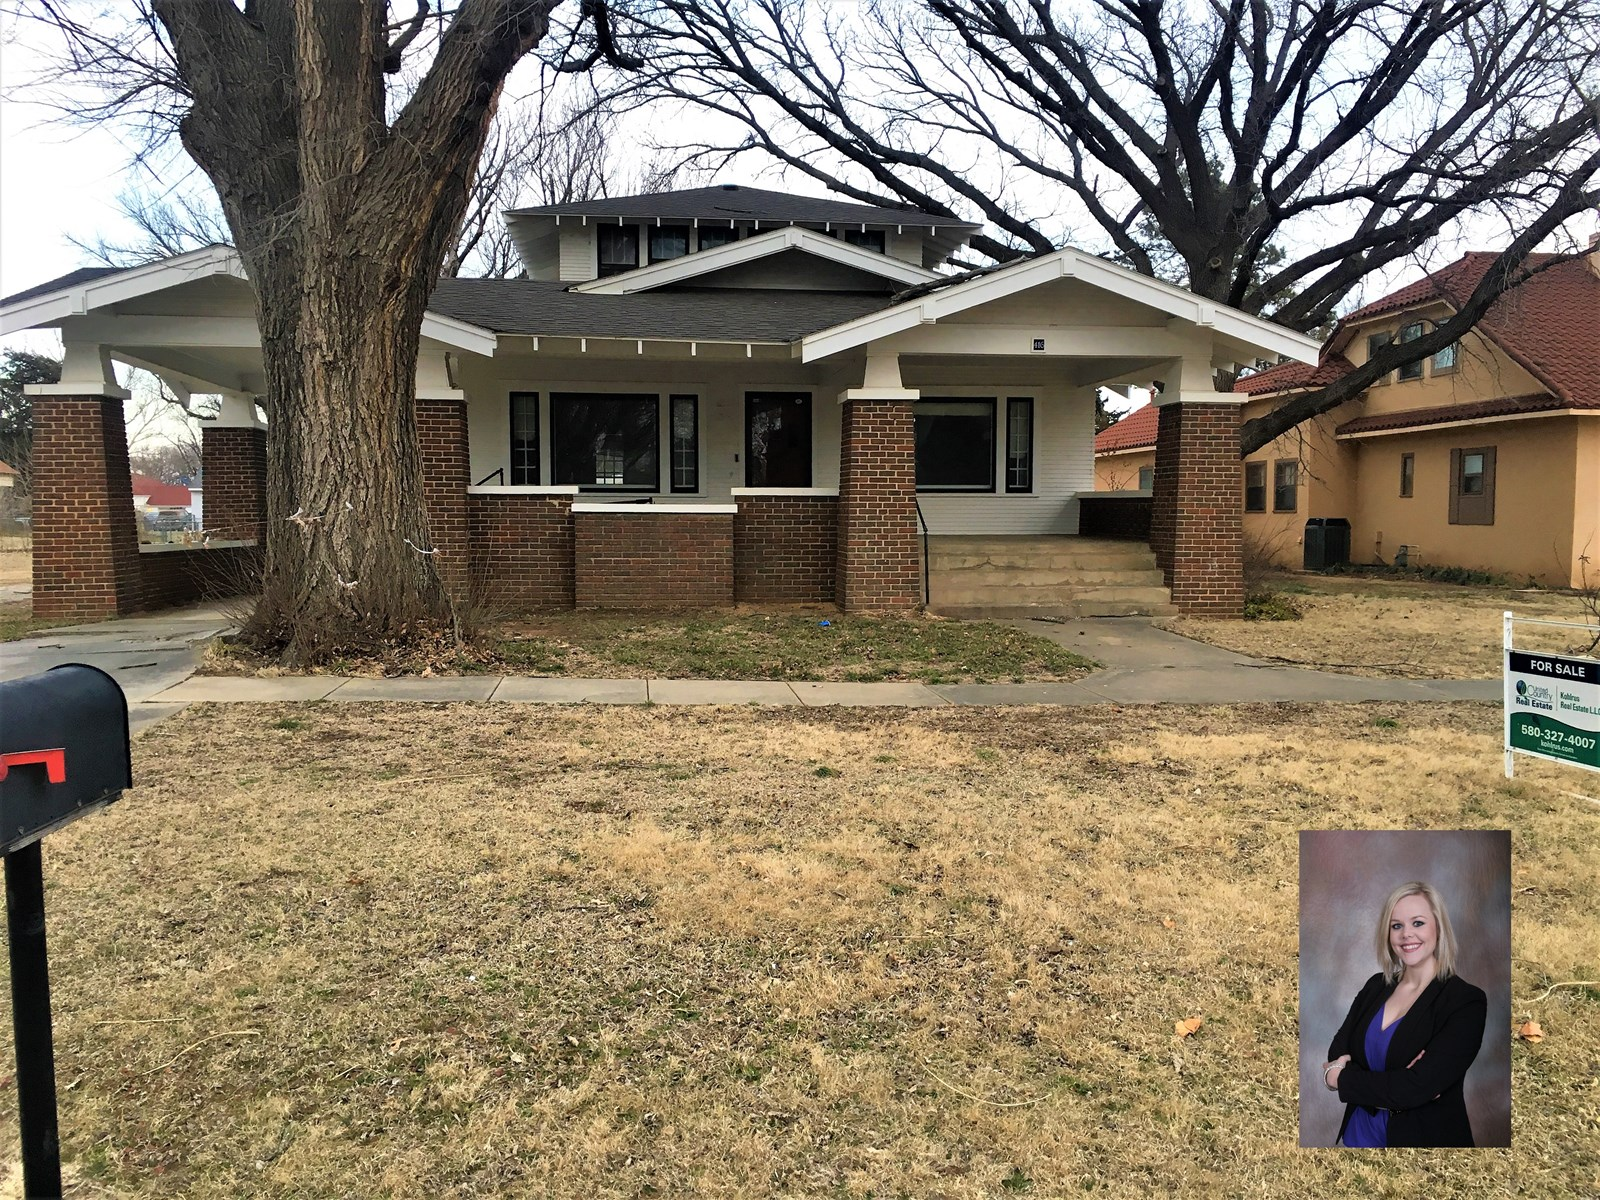 3 bedroom home with basement for sale in Kiowa KS